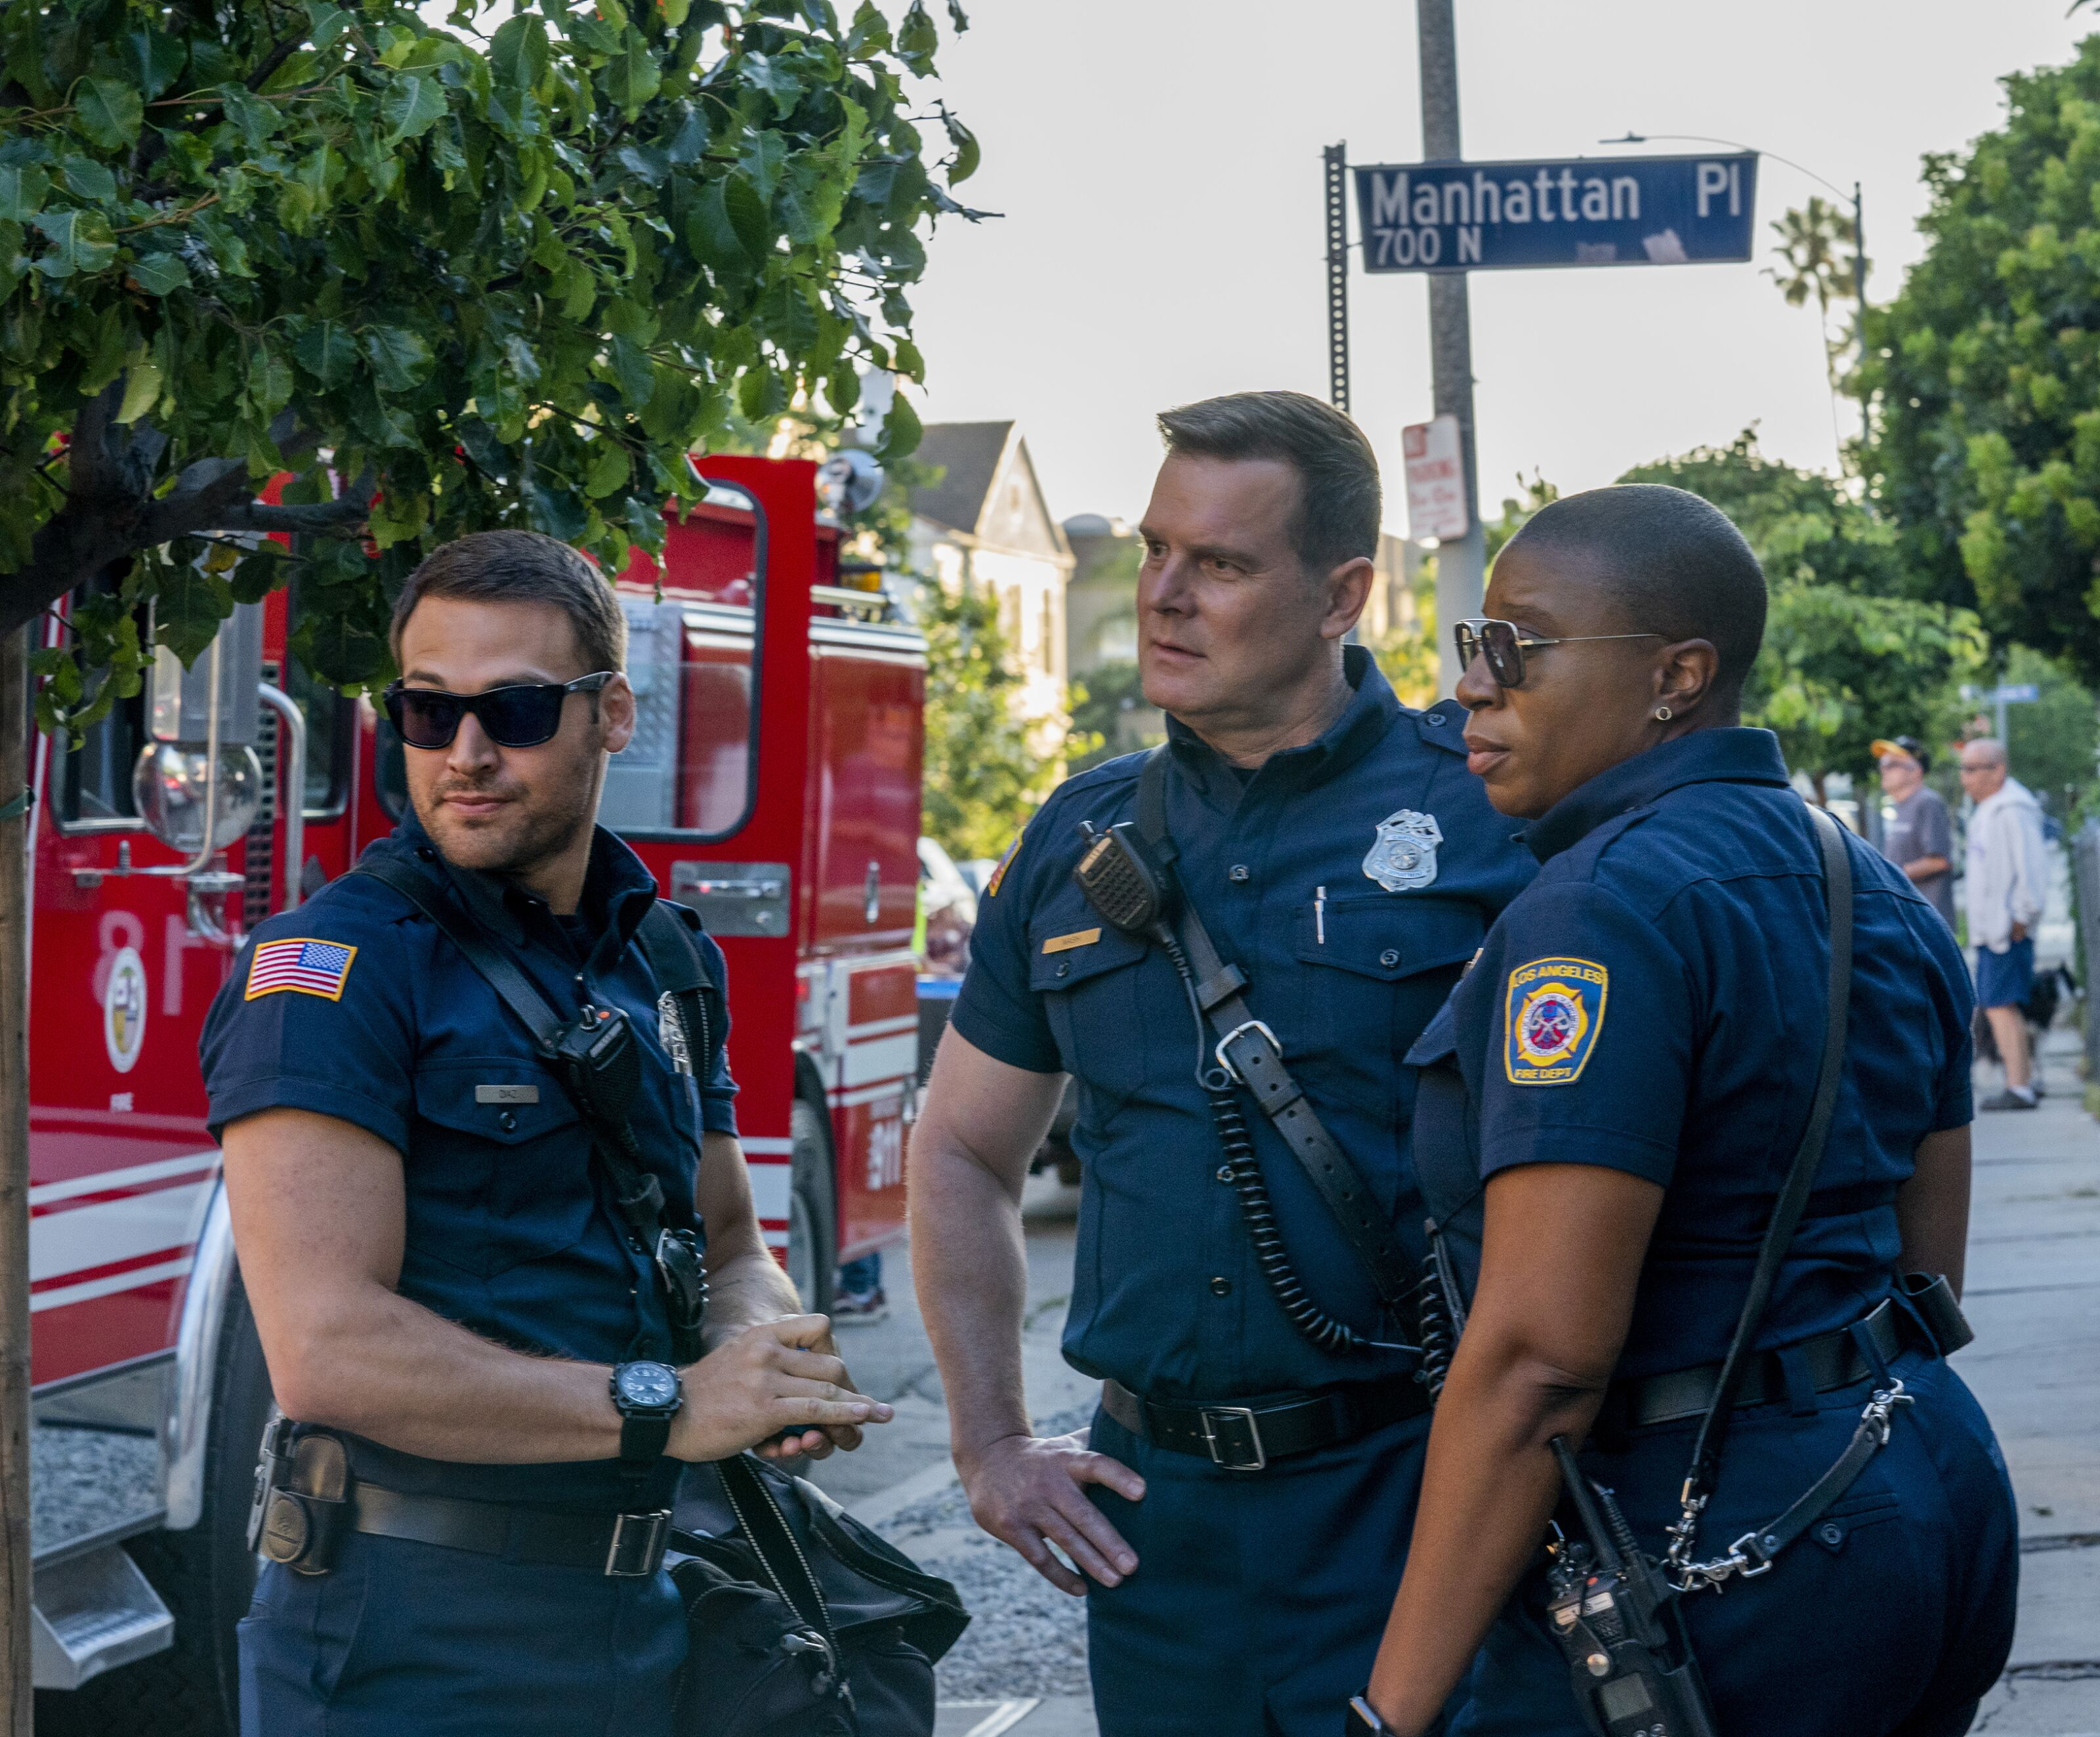 9-1-1 Season 3: Will [Spoiler] lose their job after that crash?